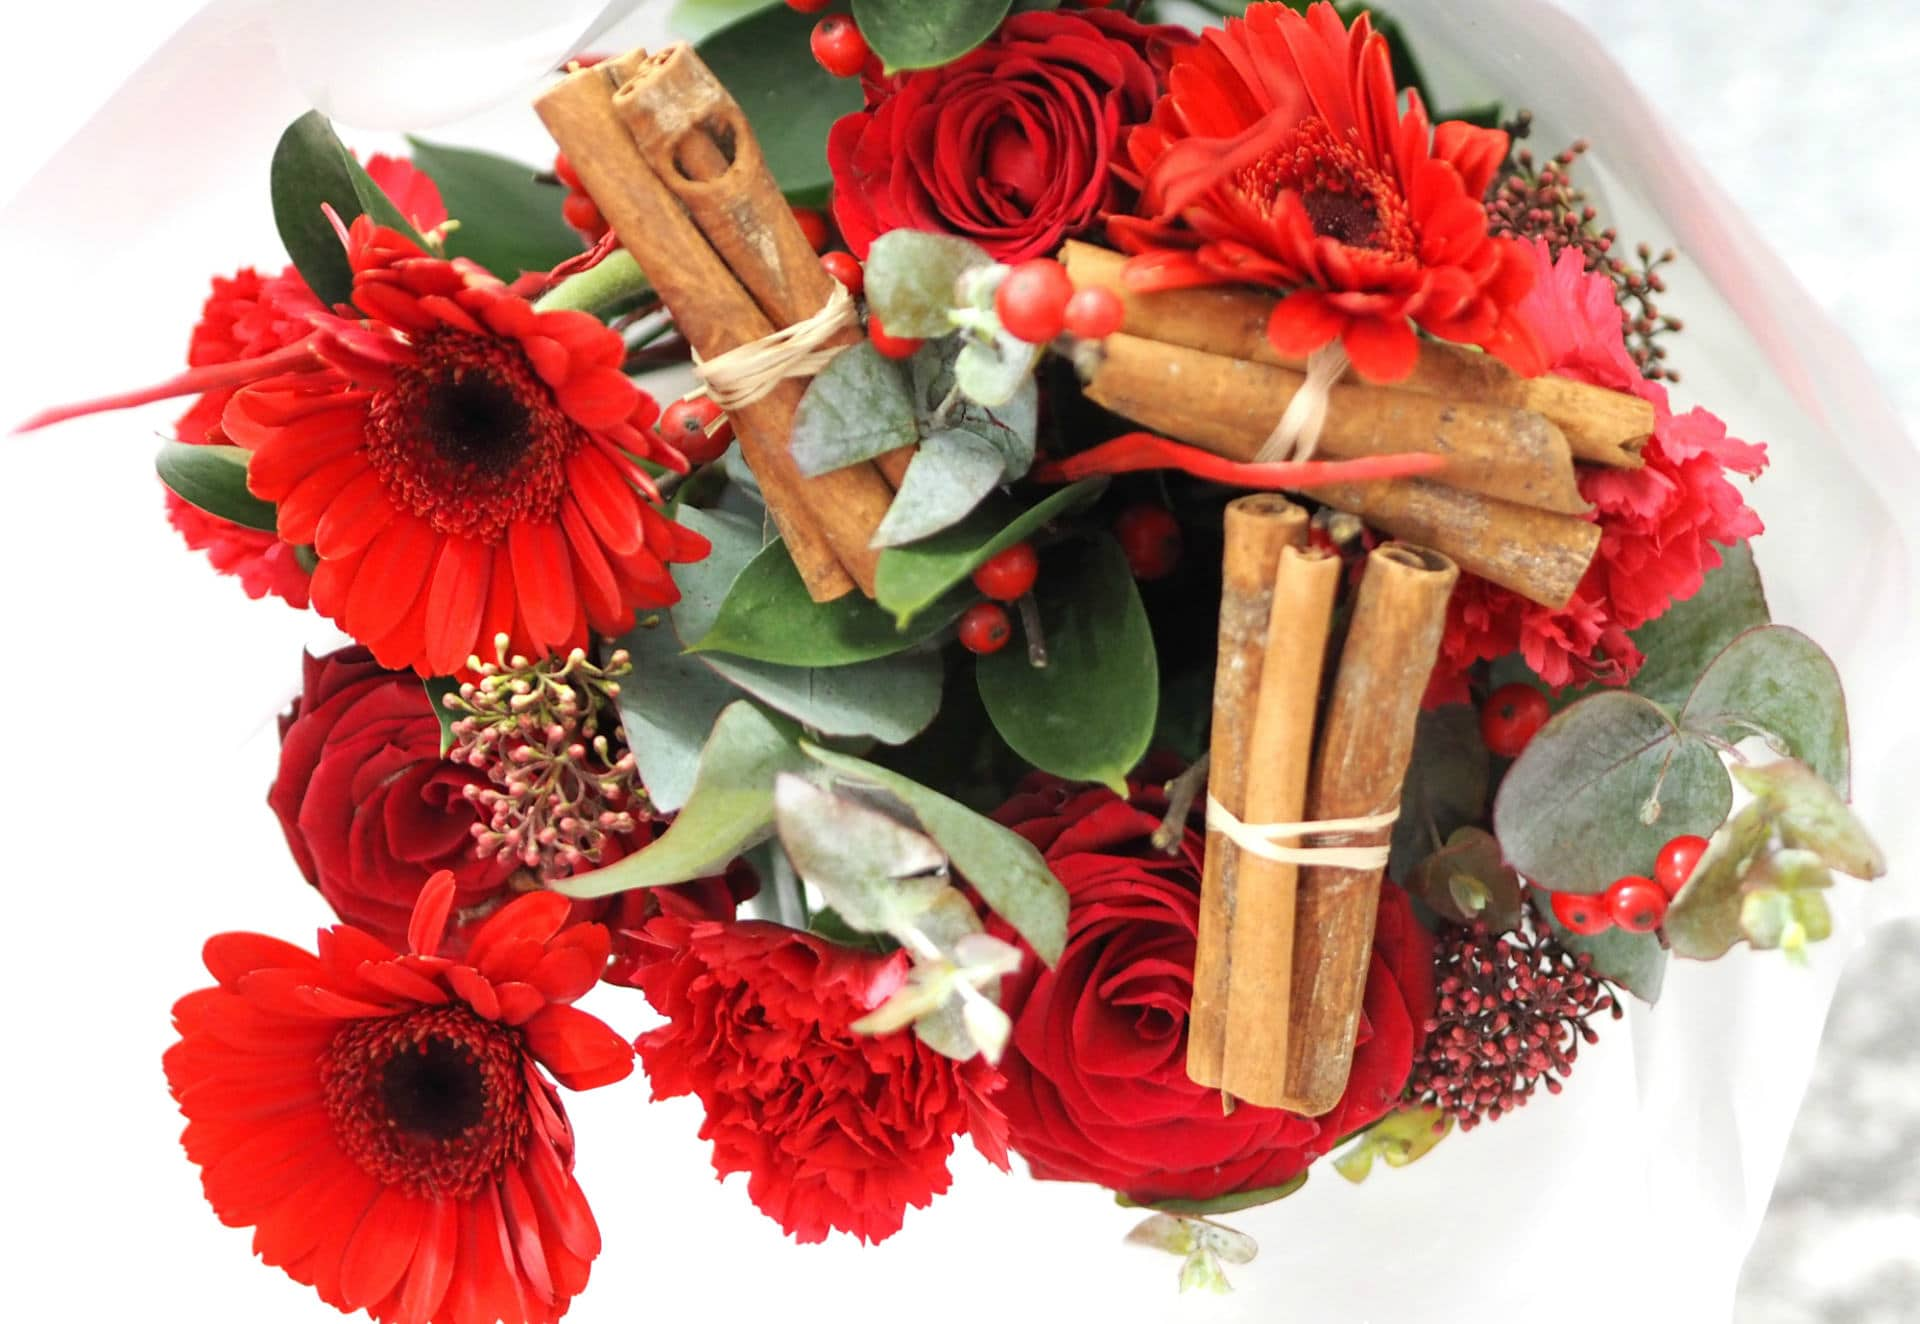 Blossoming Gifts Cinnamon Spice Christmas Bouquet